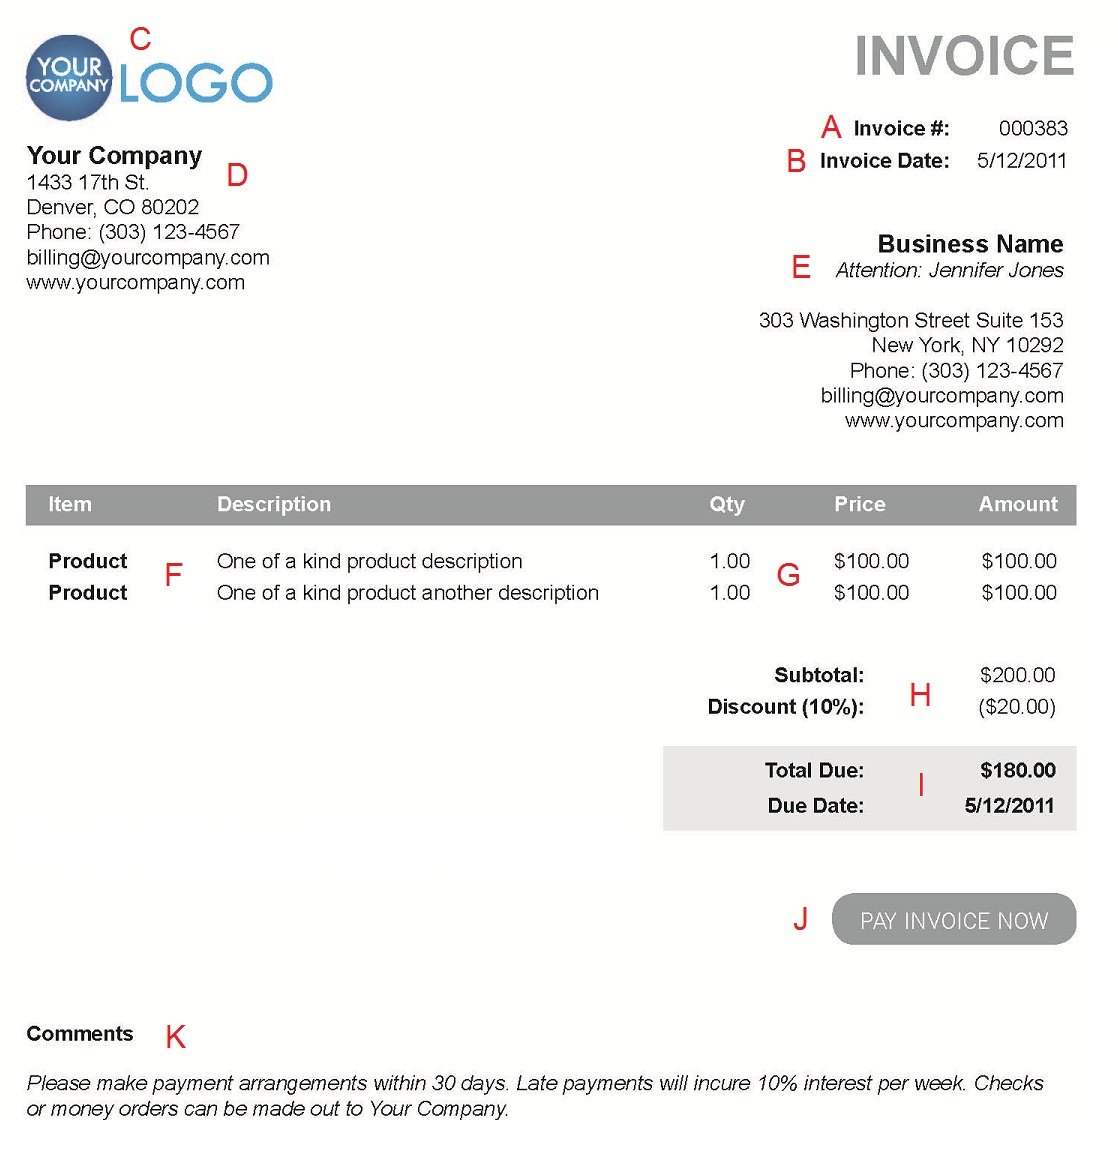 Opposenewapstandardsus  Wonderful The  Different Sections Of An Electronic Payment Invoice With Licious A  With Beautiful How To Create Invoice In Quickbooks Also Word Document Invoice Template In Addition Ford Invoice And Estimate Invoice Template As Well As Fob Invoice Additionally New Car Invoices From Paysimplecom With Opposenewapstandardsus  Licious The  Different Sections Of An Electronic Payment Invoice With Beautiful A  And Wonderful How To Create Invoice In Quickbooks Also Word Document Invoice Template In Addition Ford Invoice From Paysimplecom